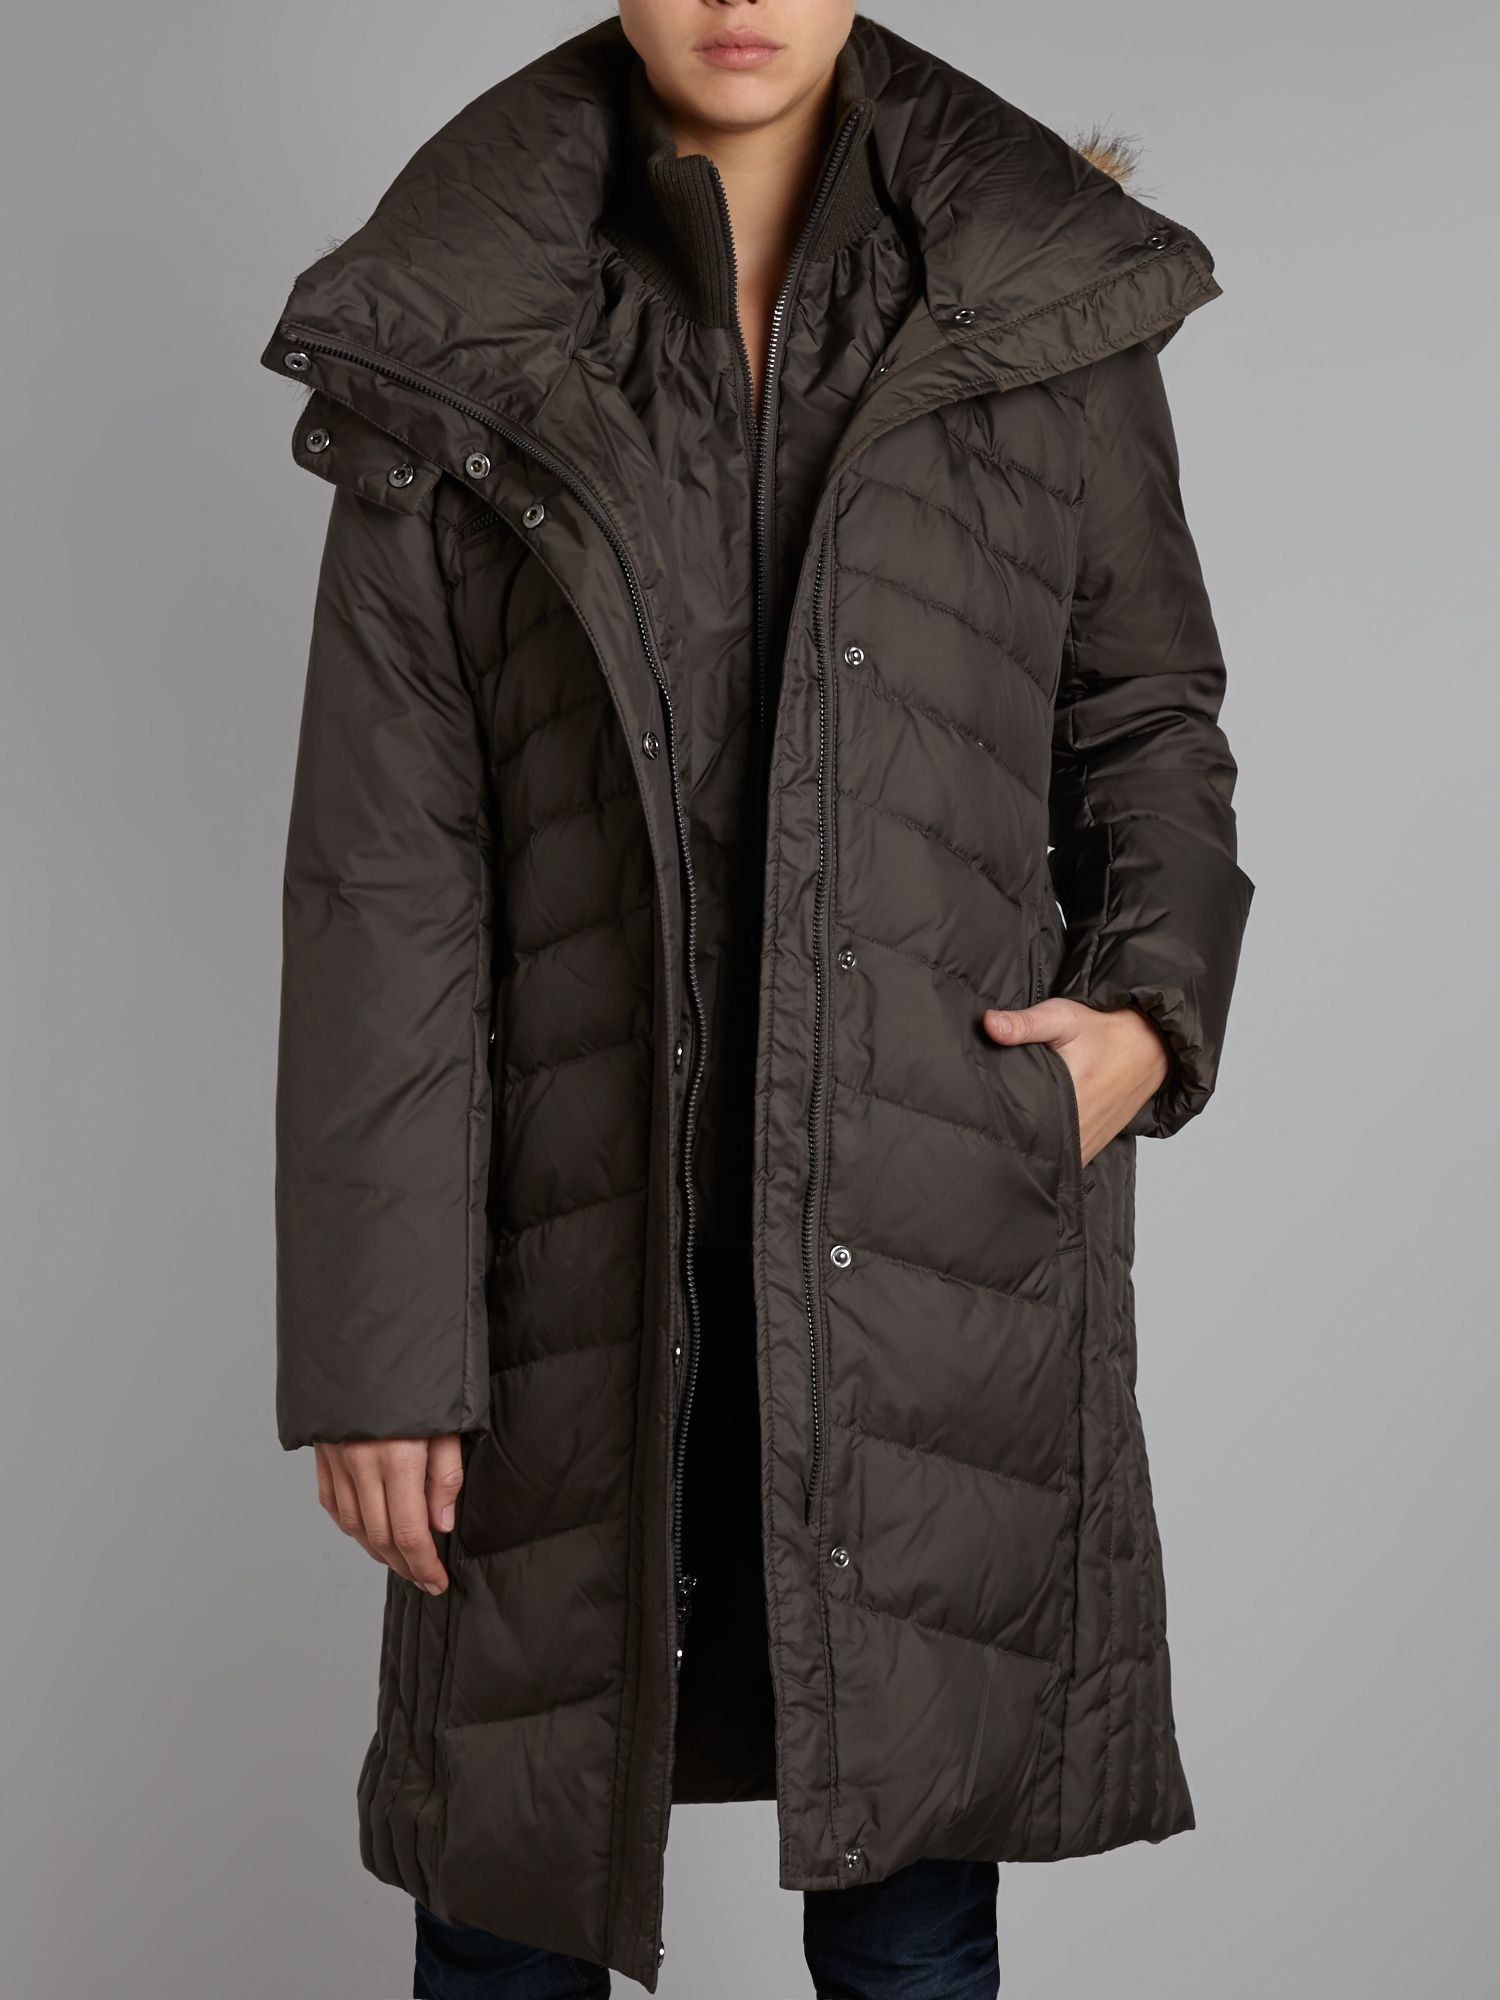 Marvel down filled coat